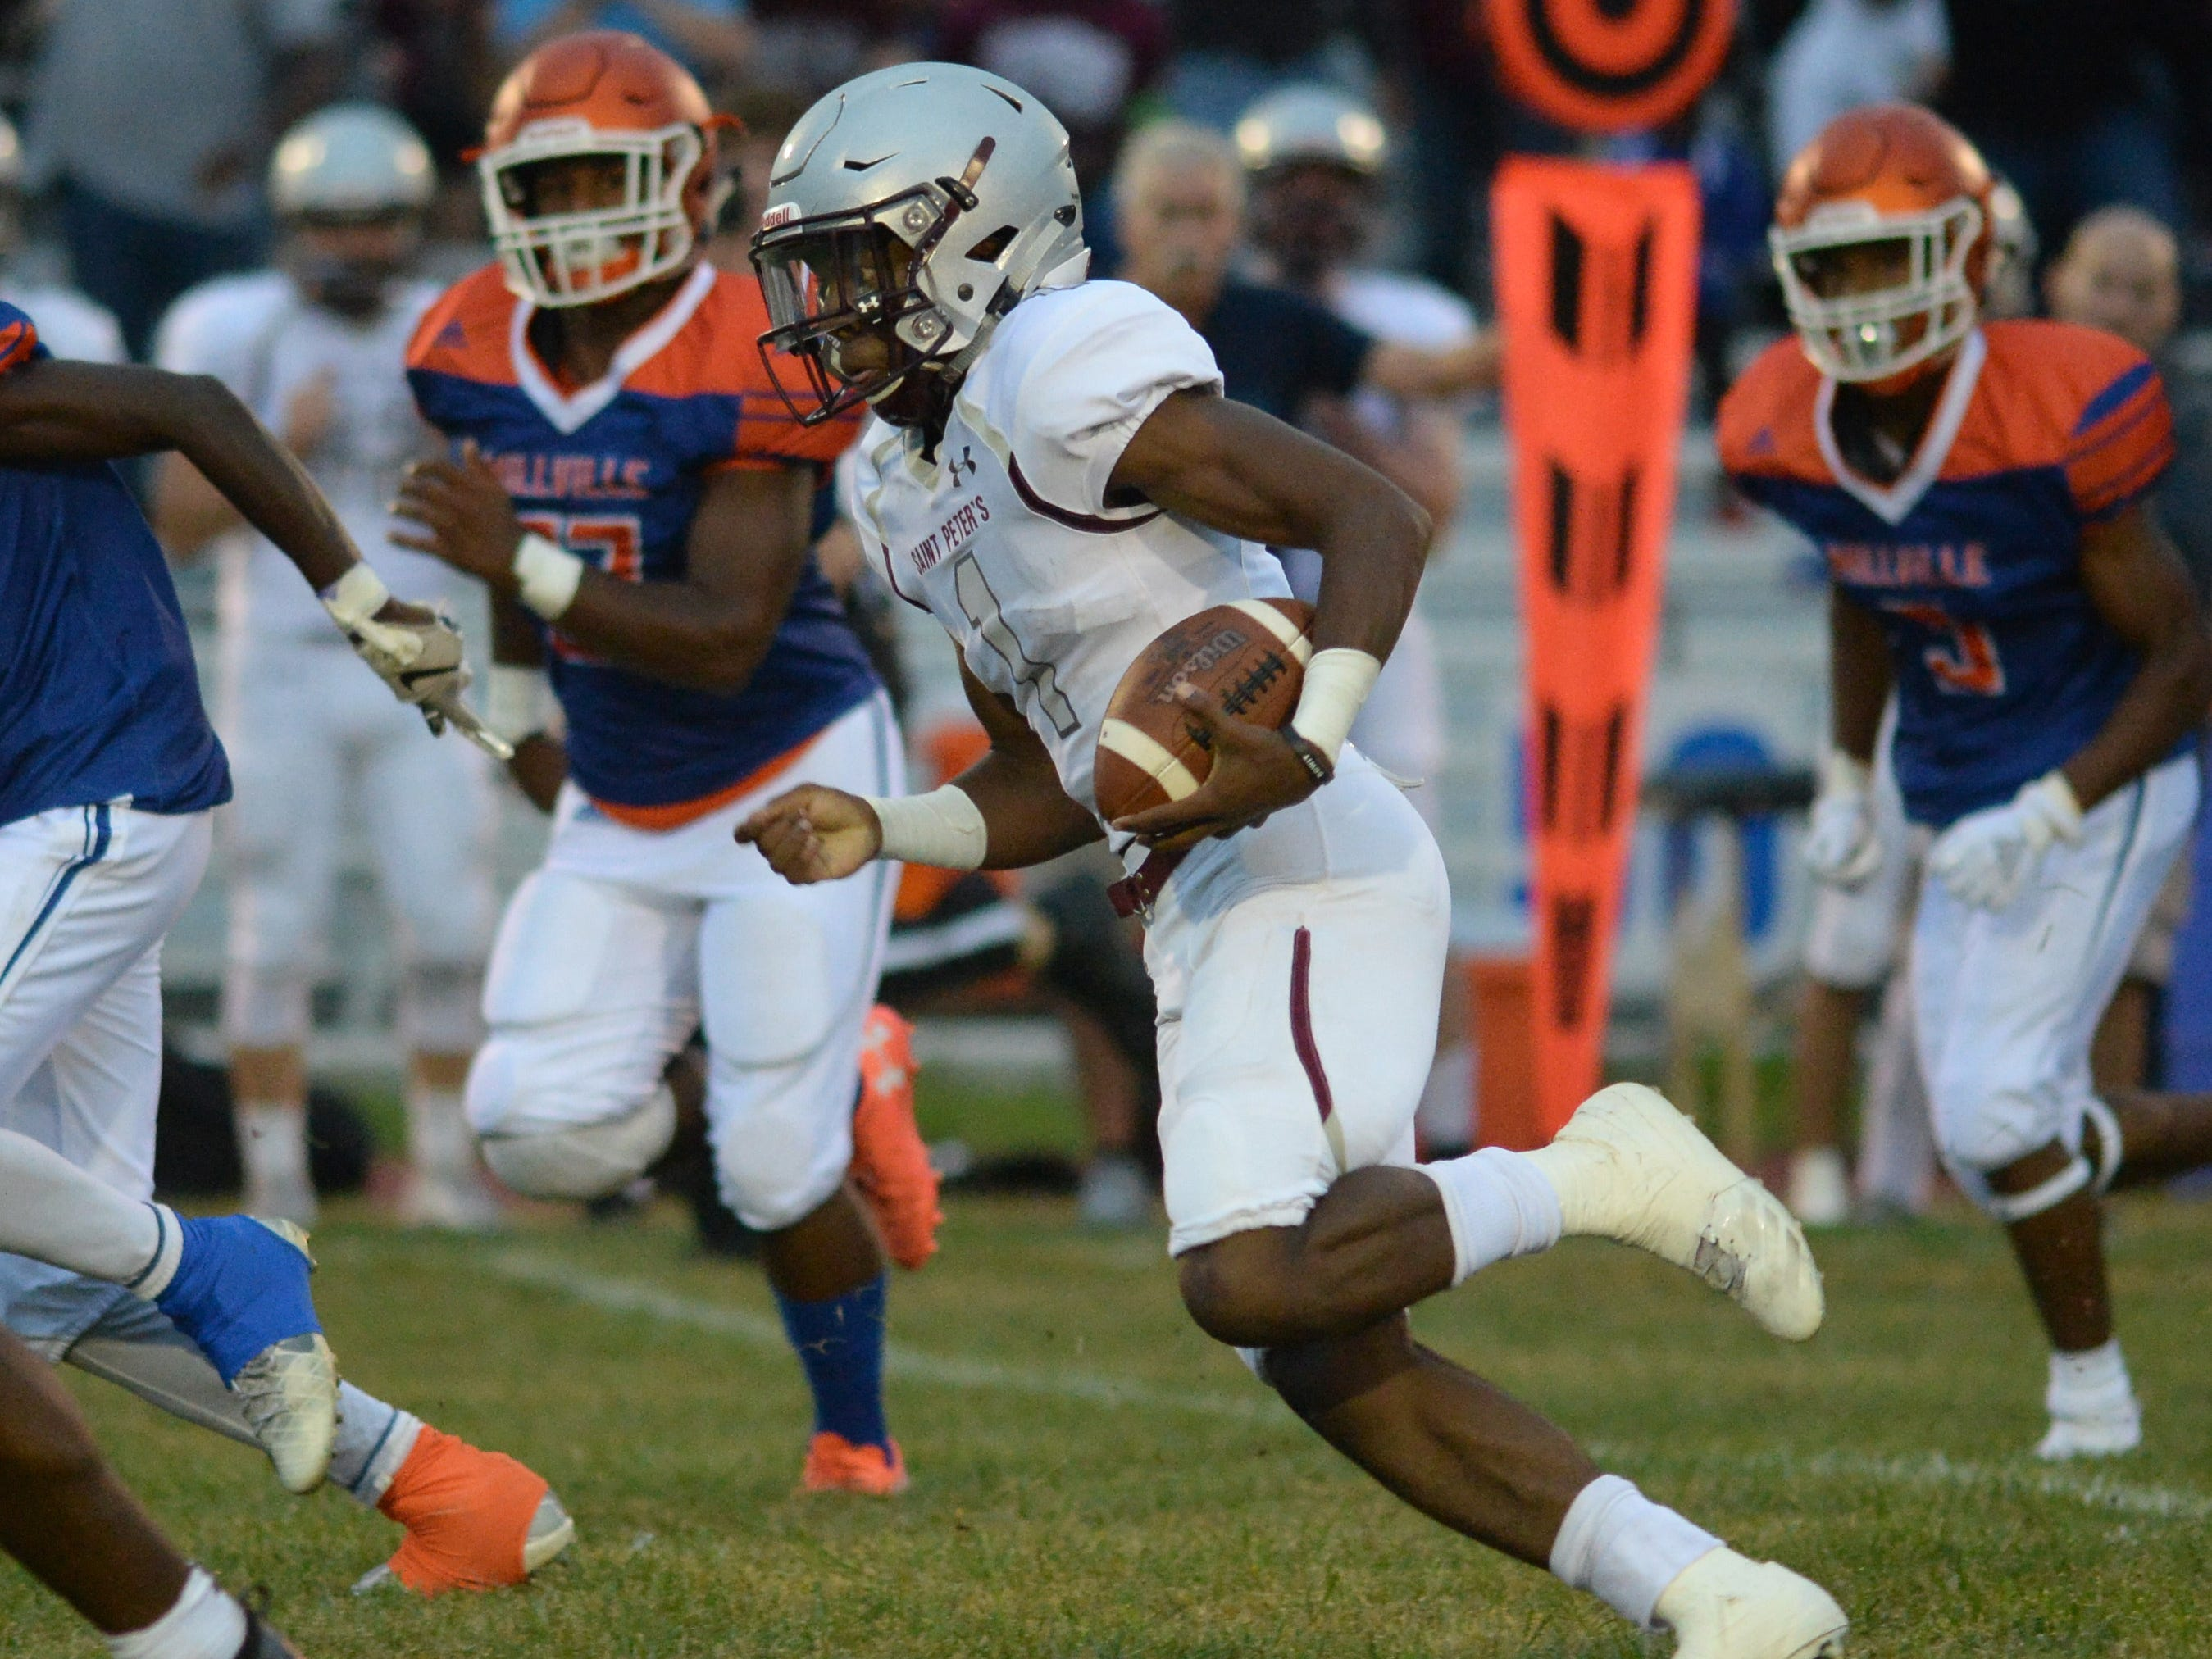 St. Peter's Prep's Ayir Asante carries the ball during the season opening football game against Millville at Millville Memorial High School, Friday, Aug. 31, 2018.